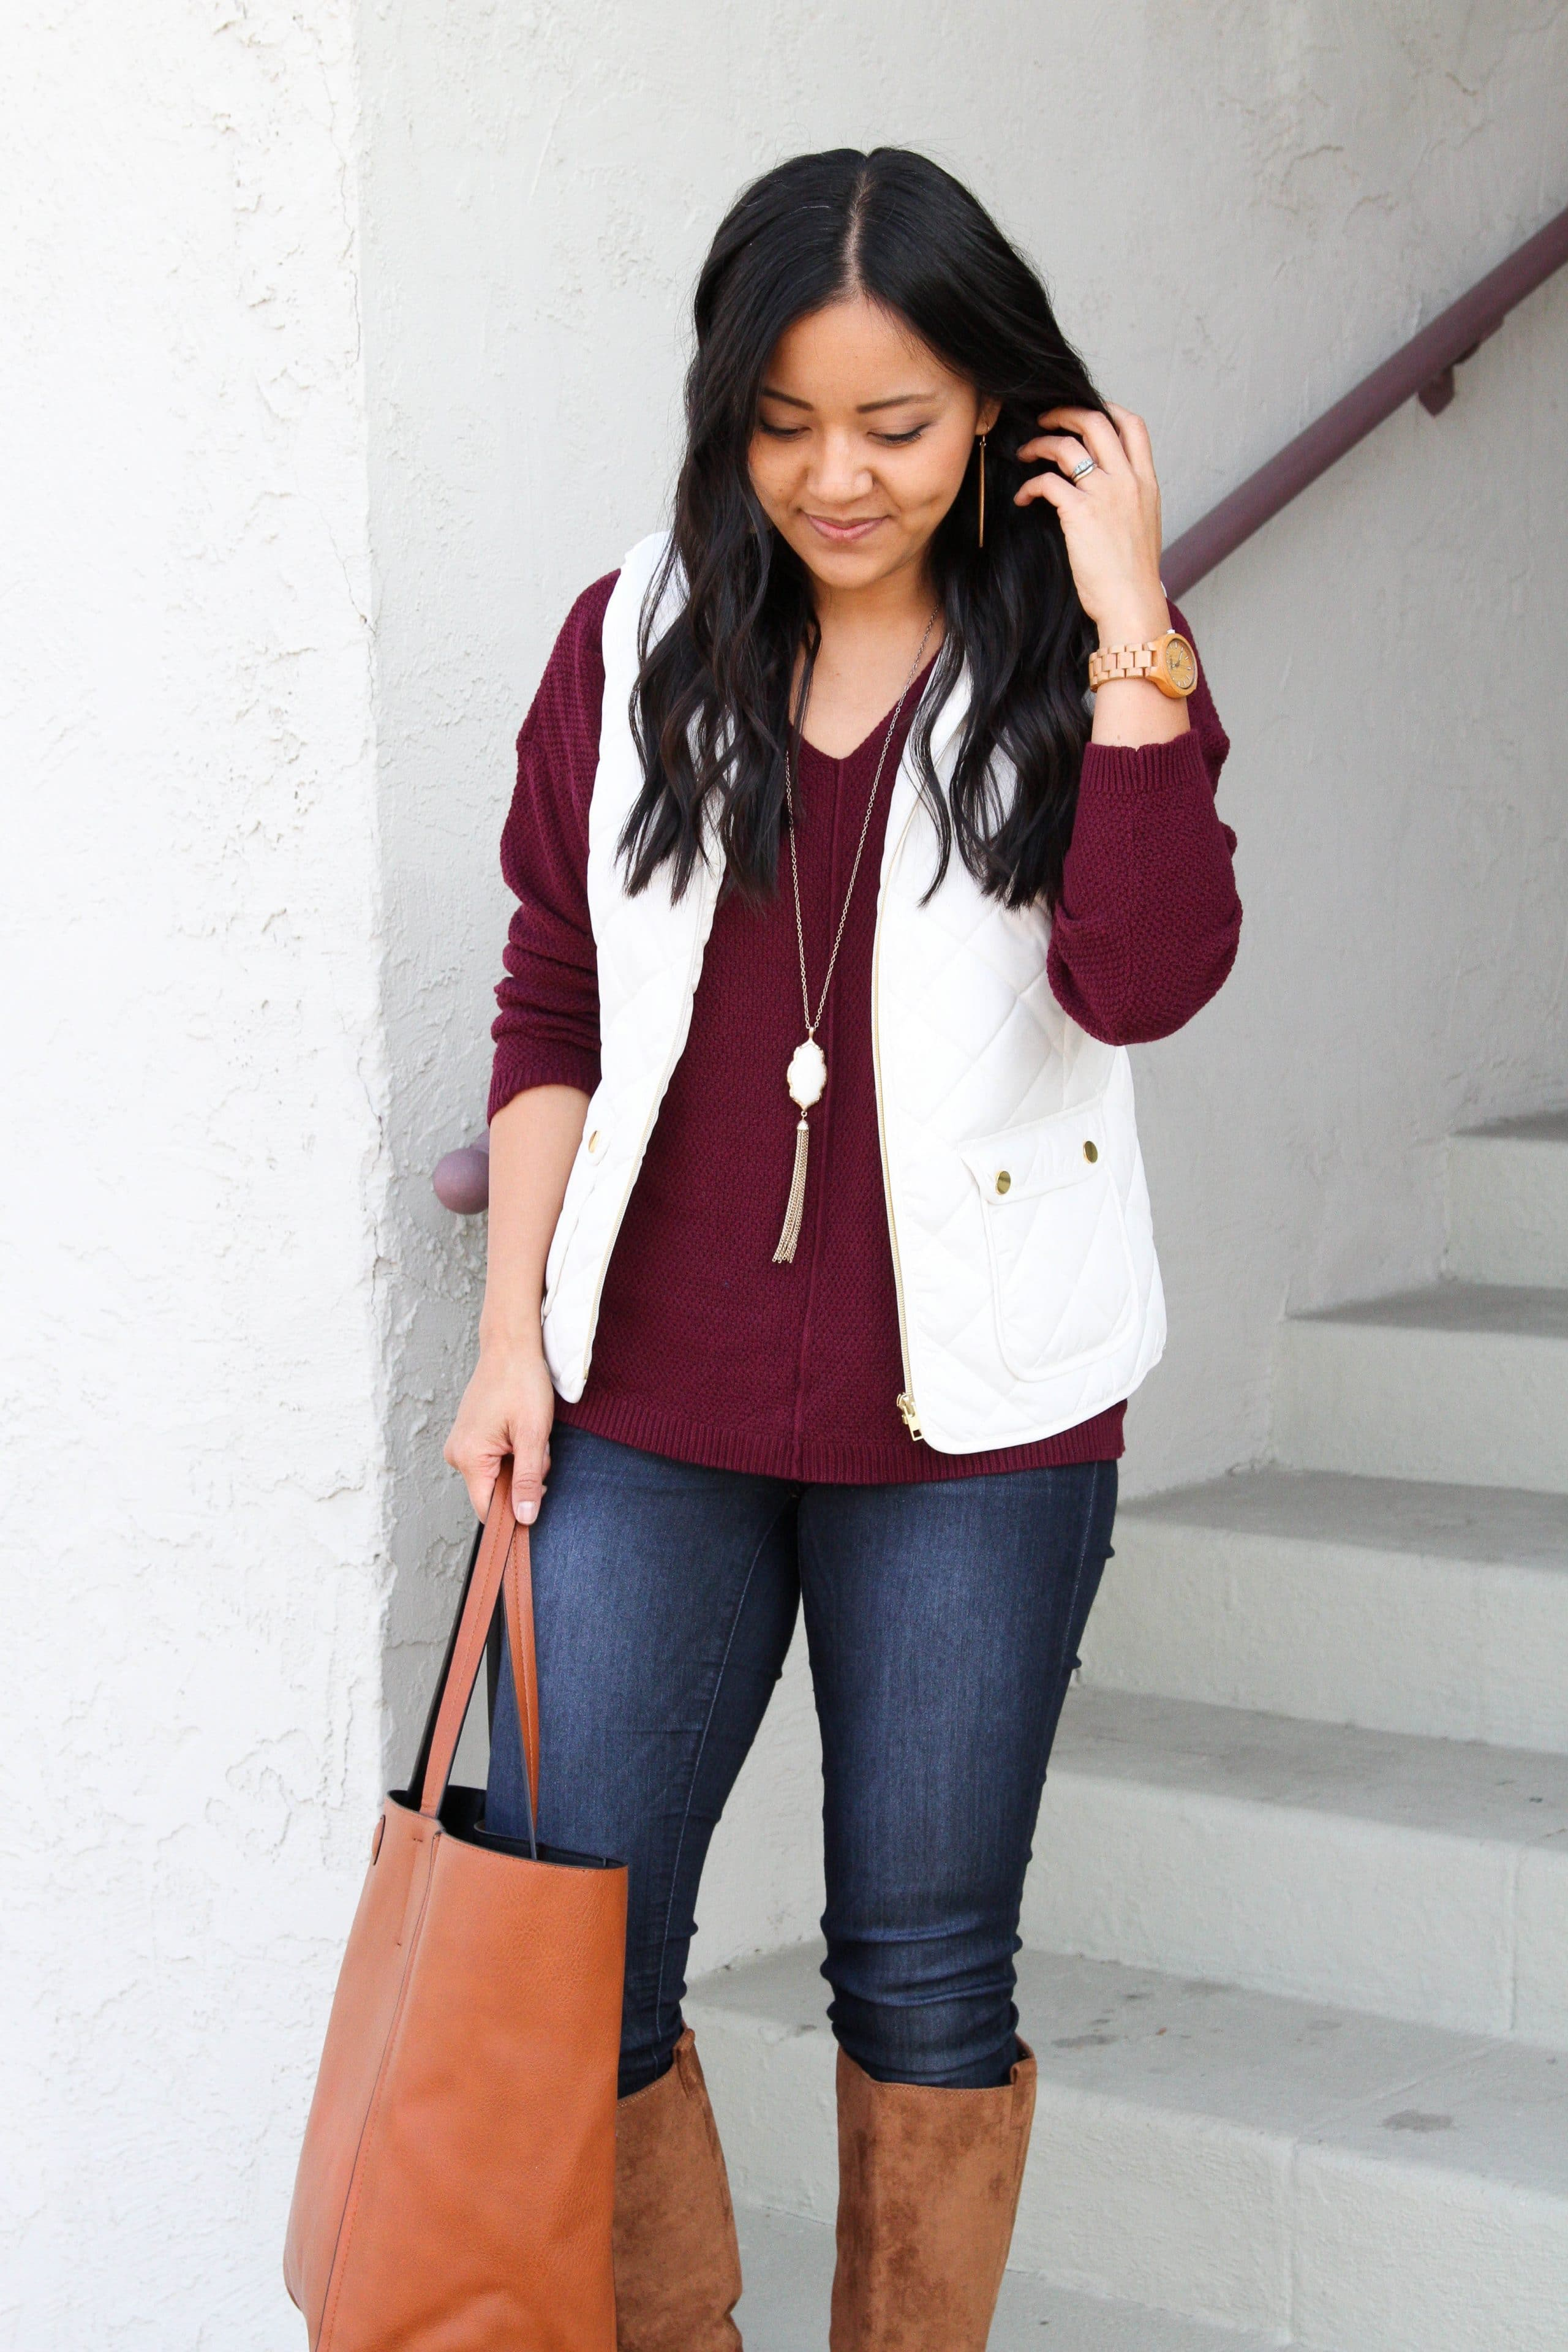 maroon sweater + white vest + skinny jeans + suede boots + cognac tote